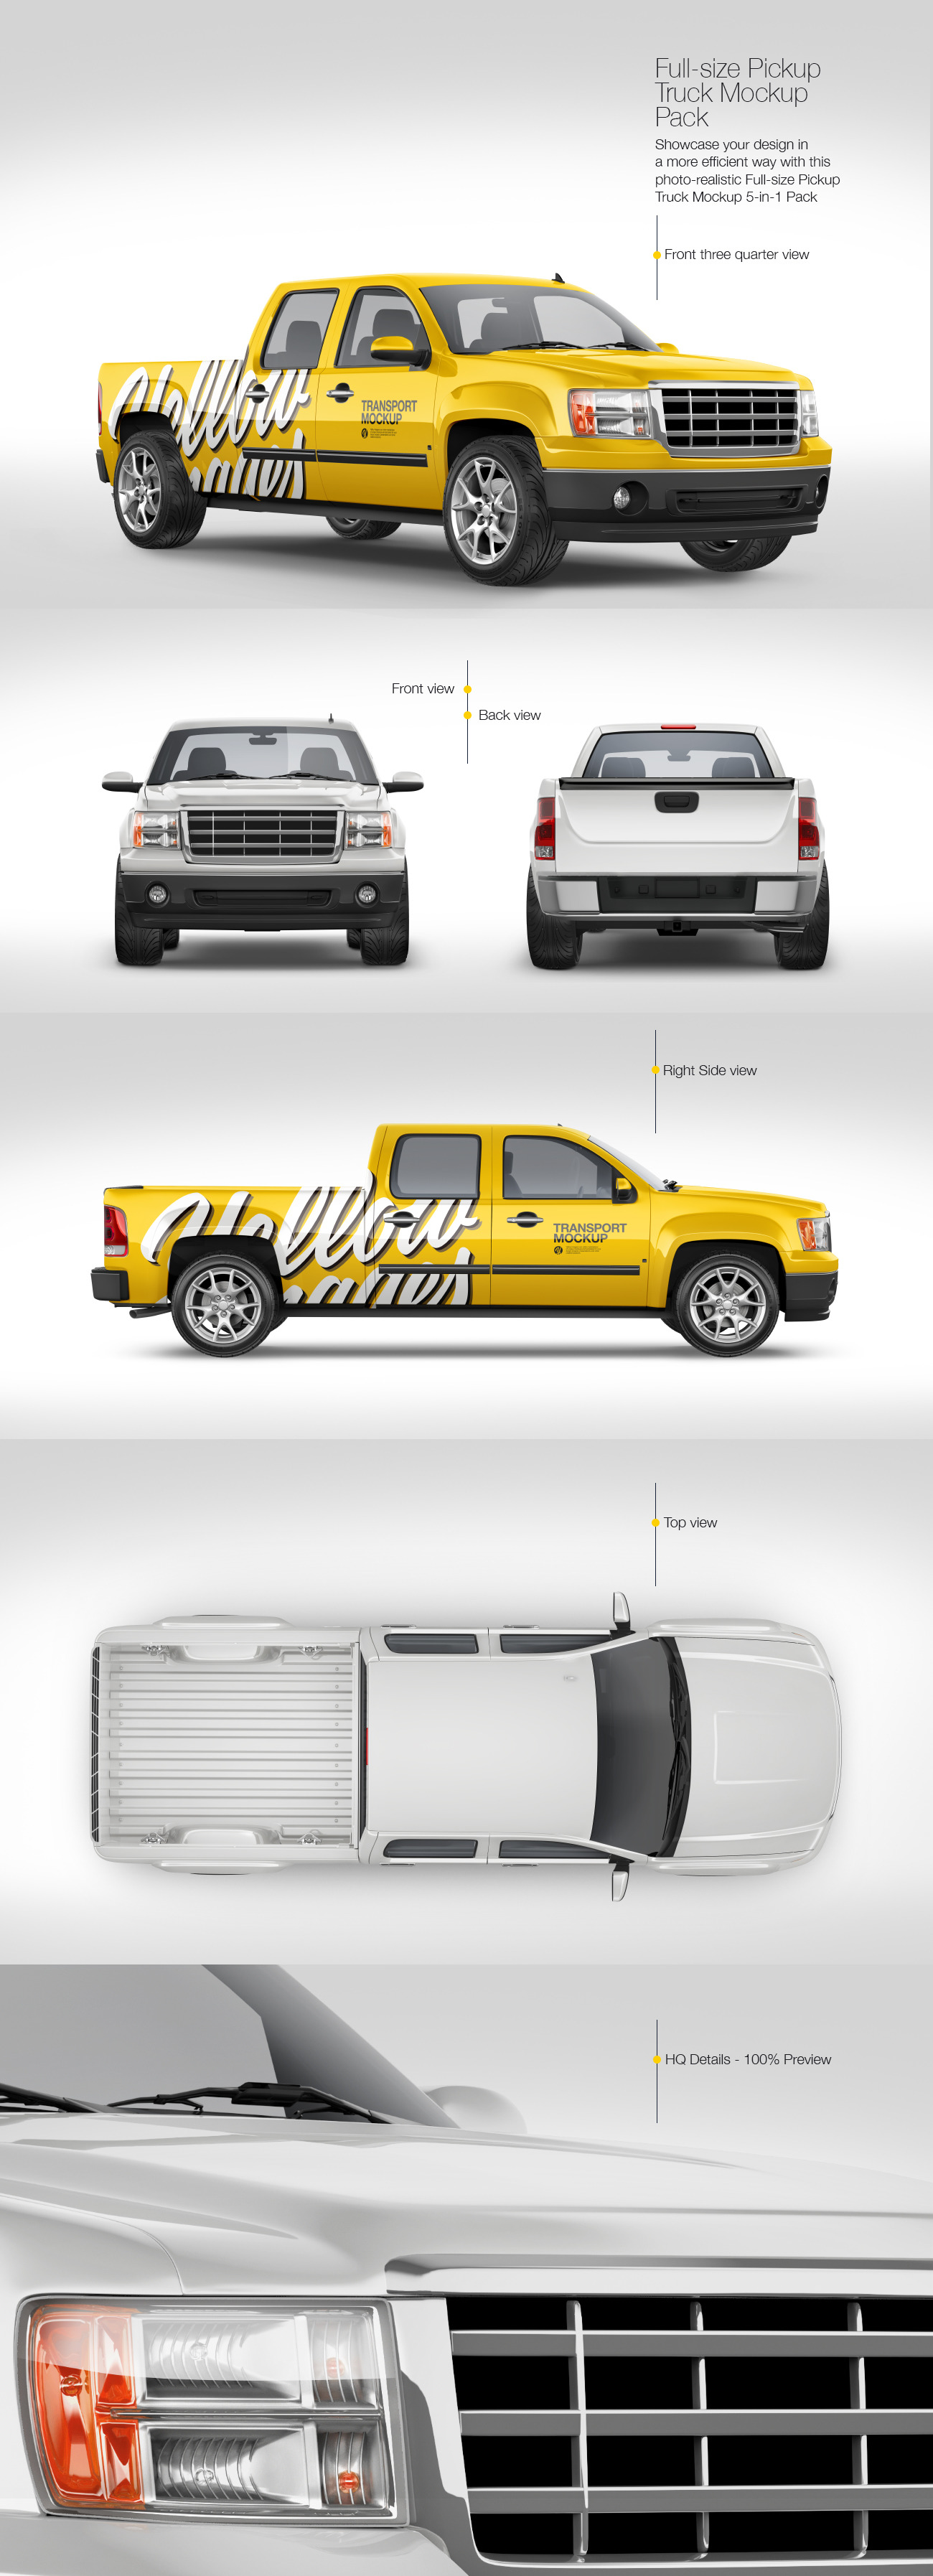 Full-Size Pickup Truck Mockup Pack